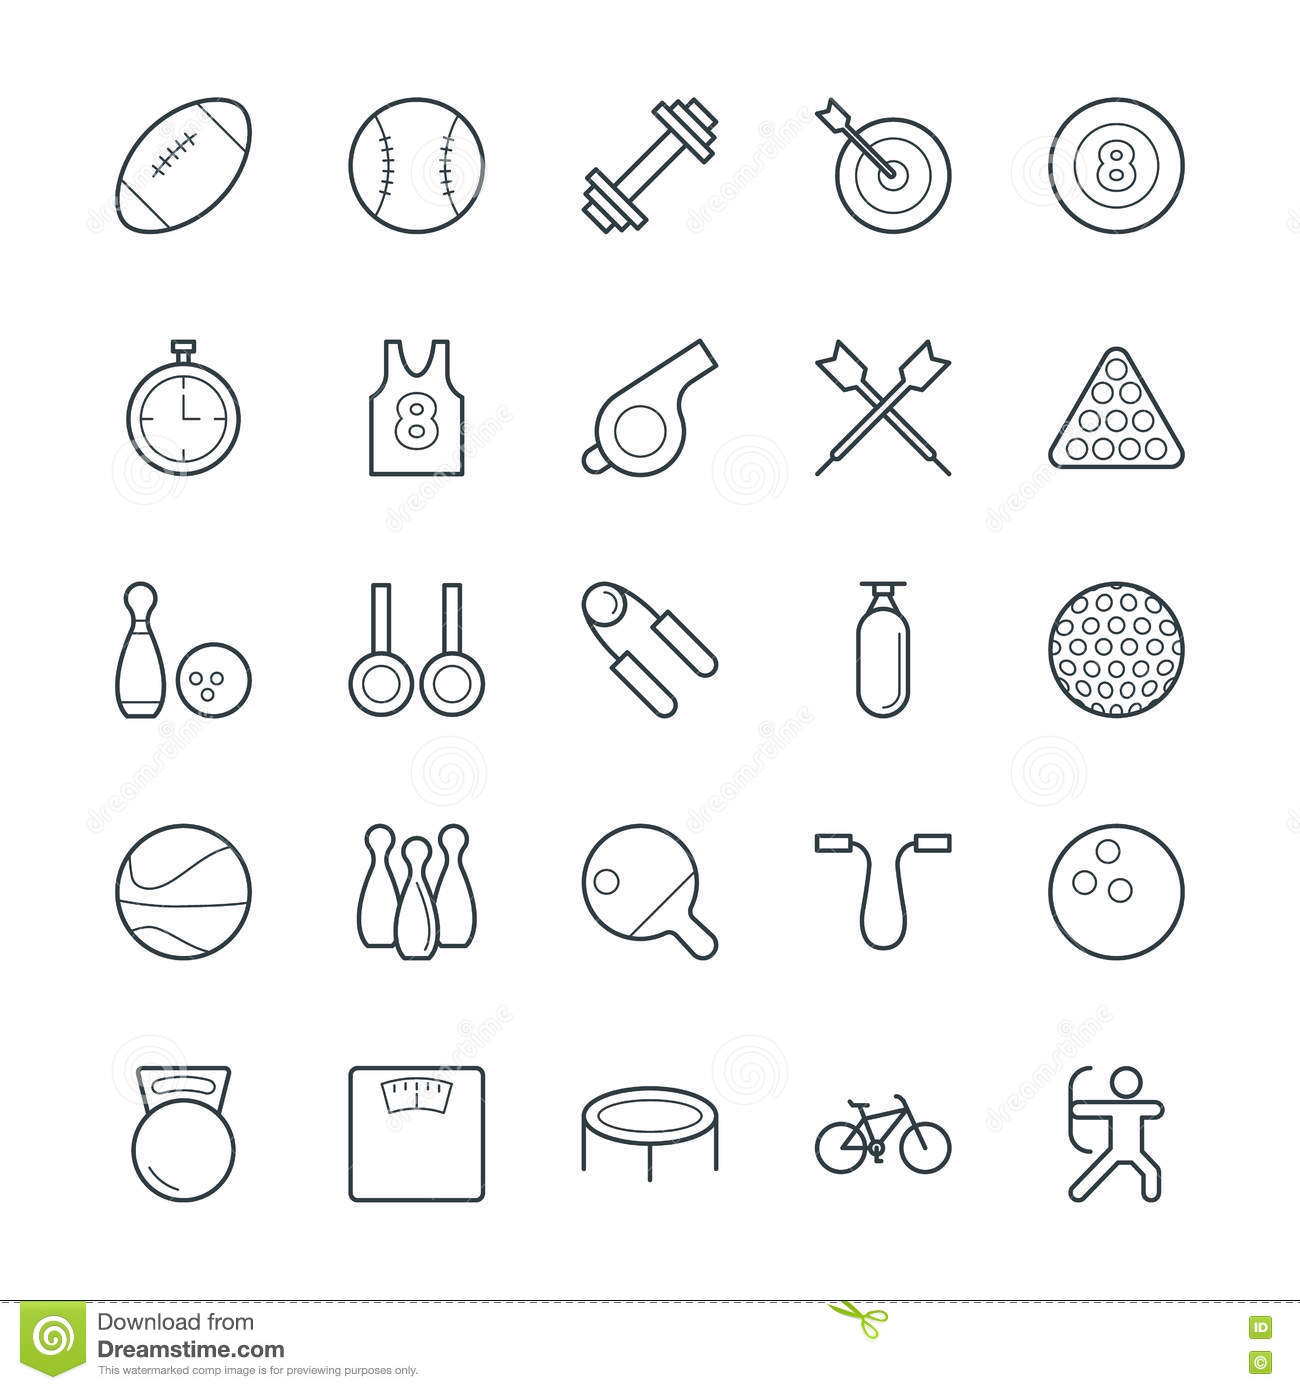 Sports Cool Vector Icons 1 stock illustration